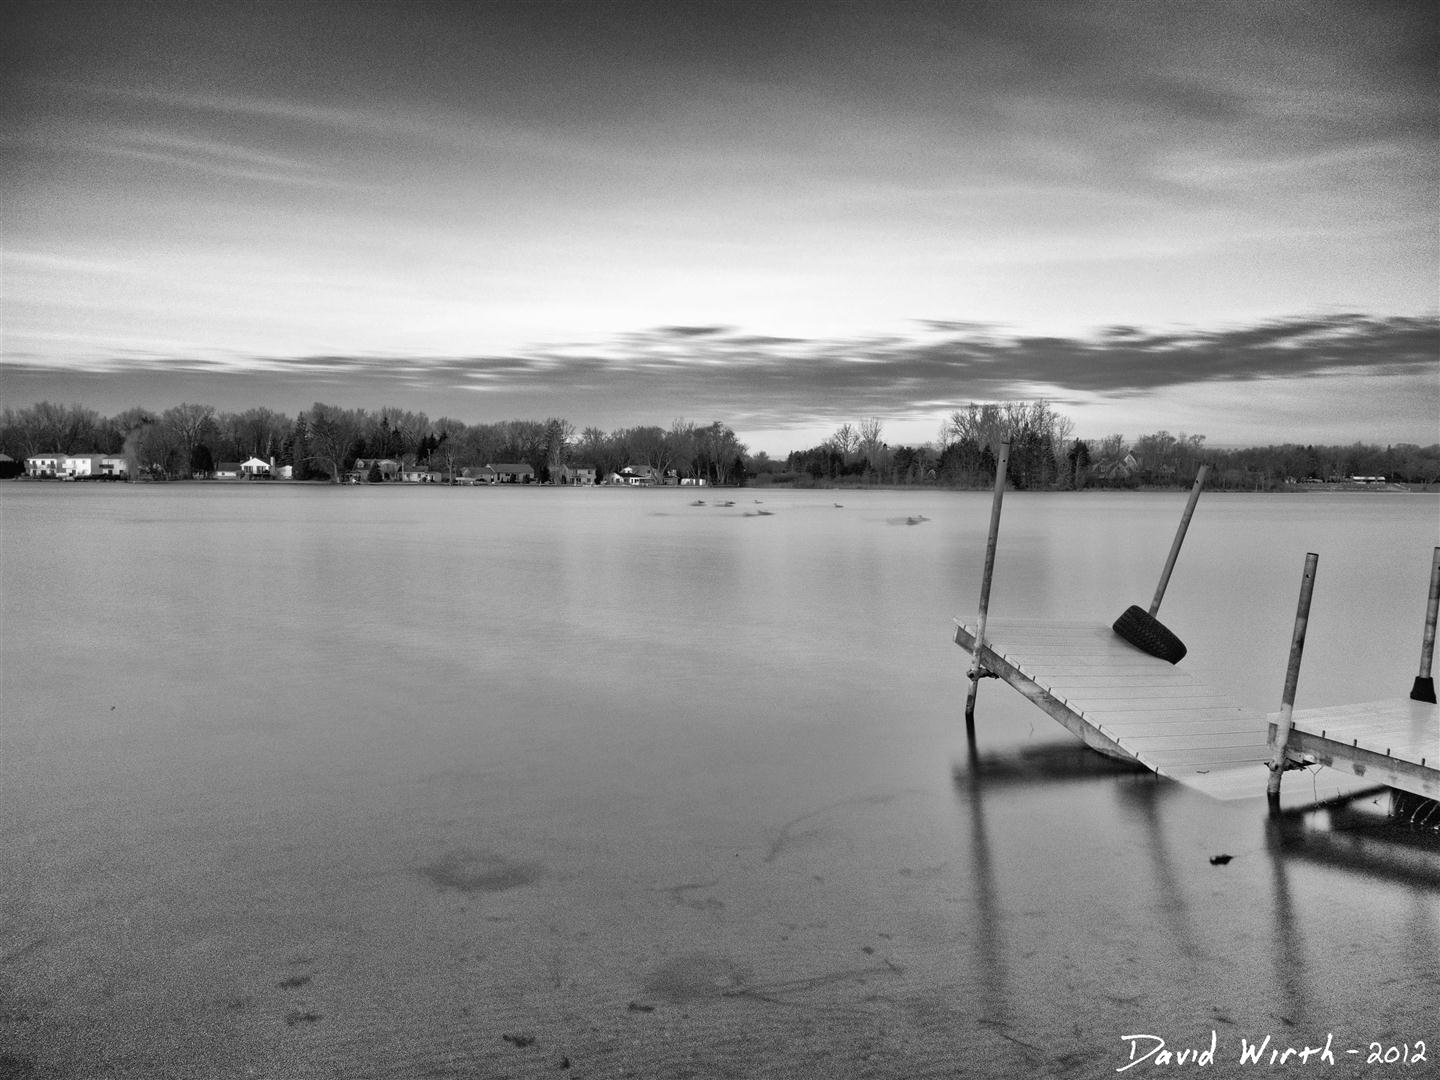 ND filter at the lake, calm lake water, smooth, dock, black and white, effect, photography